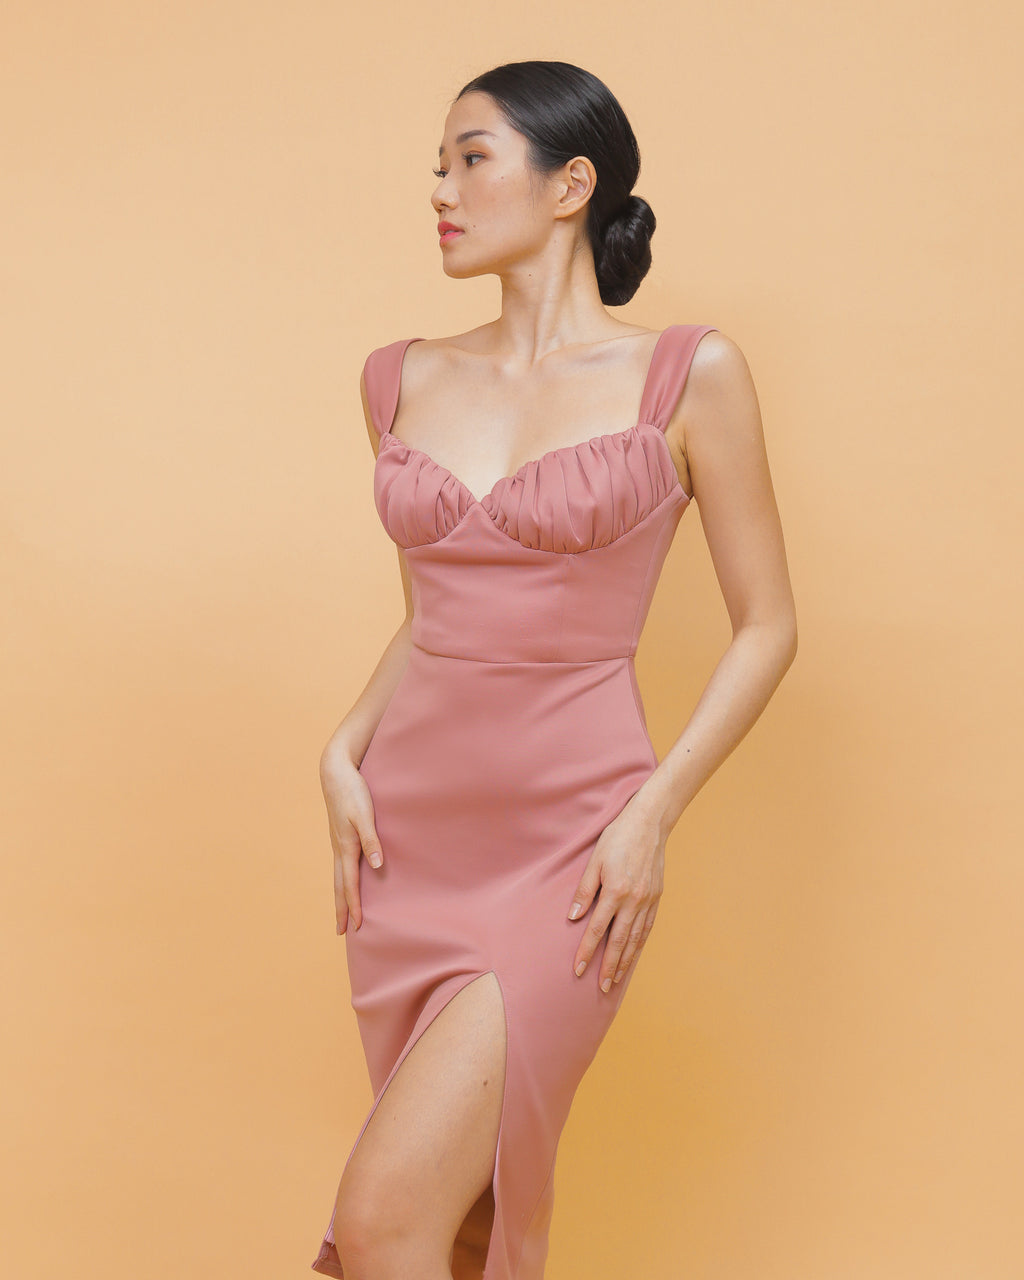 GISELLE in Blush Pink: waste prevention